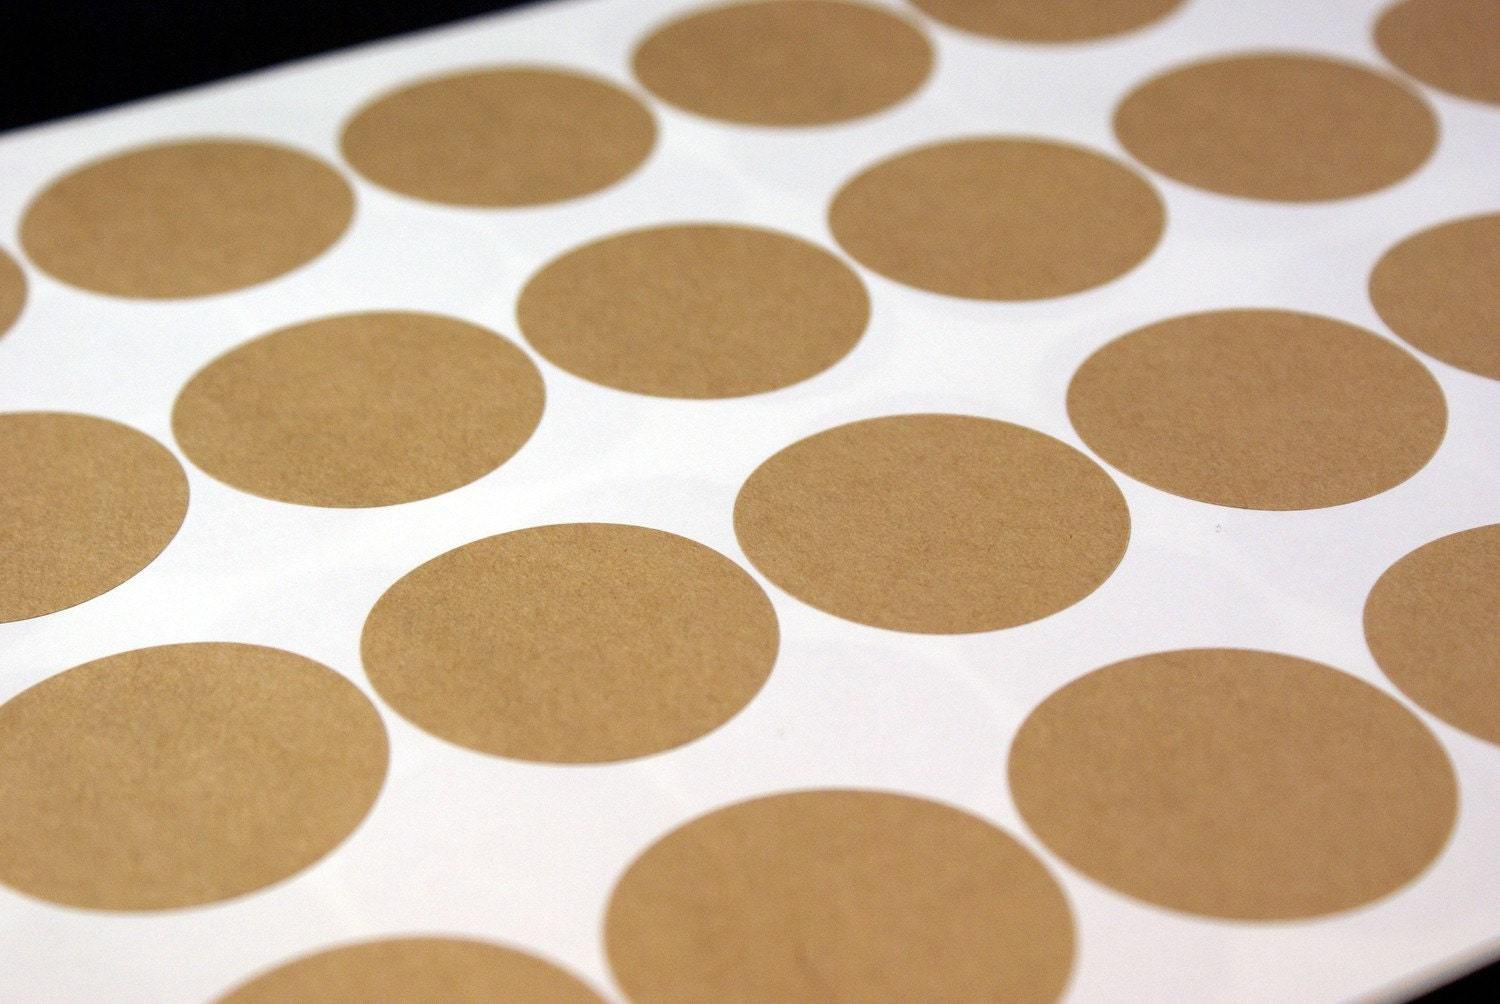 It is a graphic of Enterprising 1 Inch Round Custom Labels